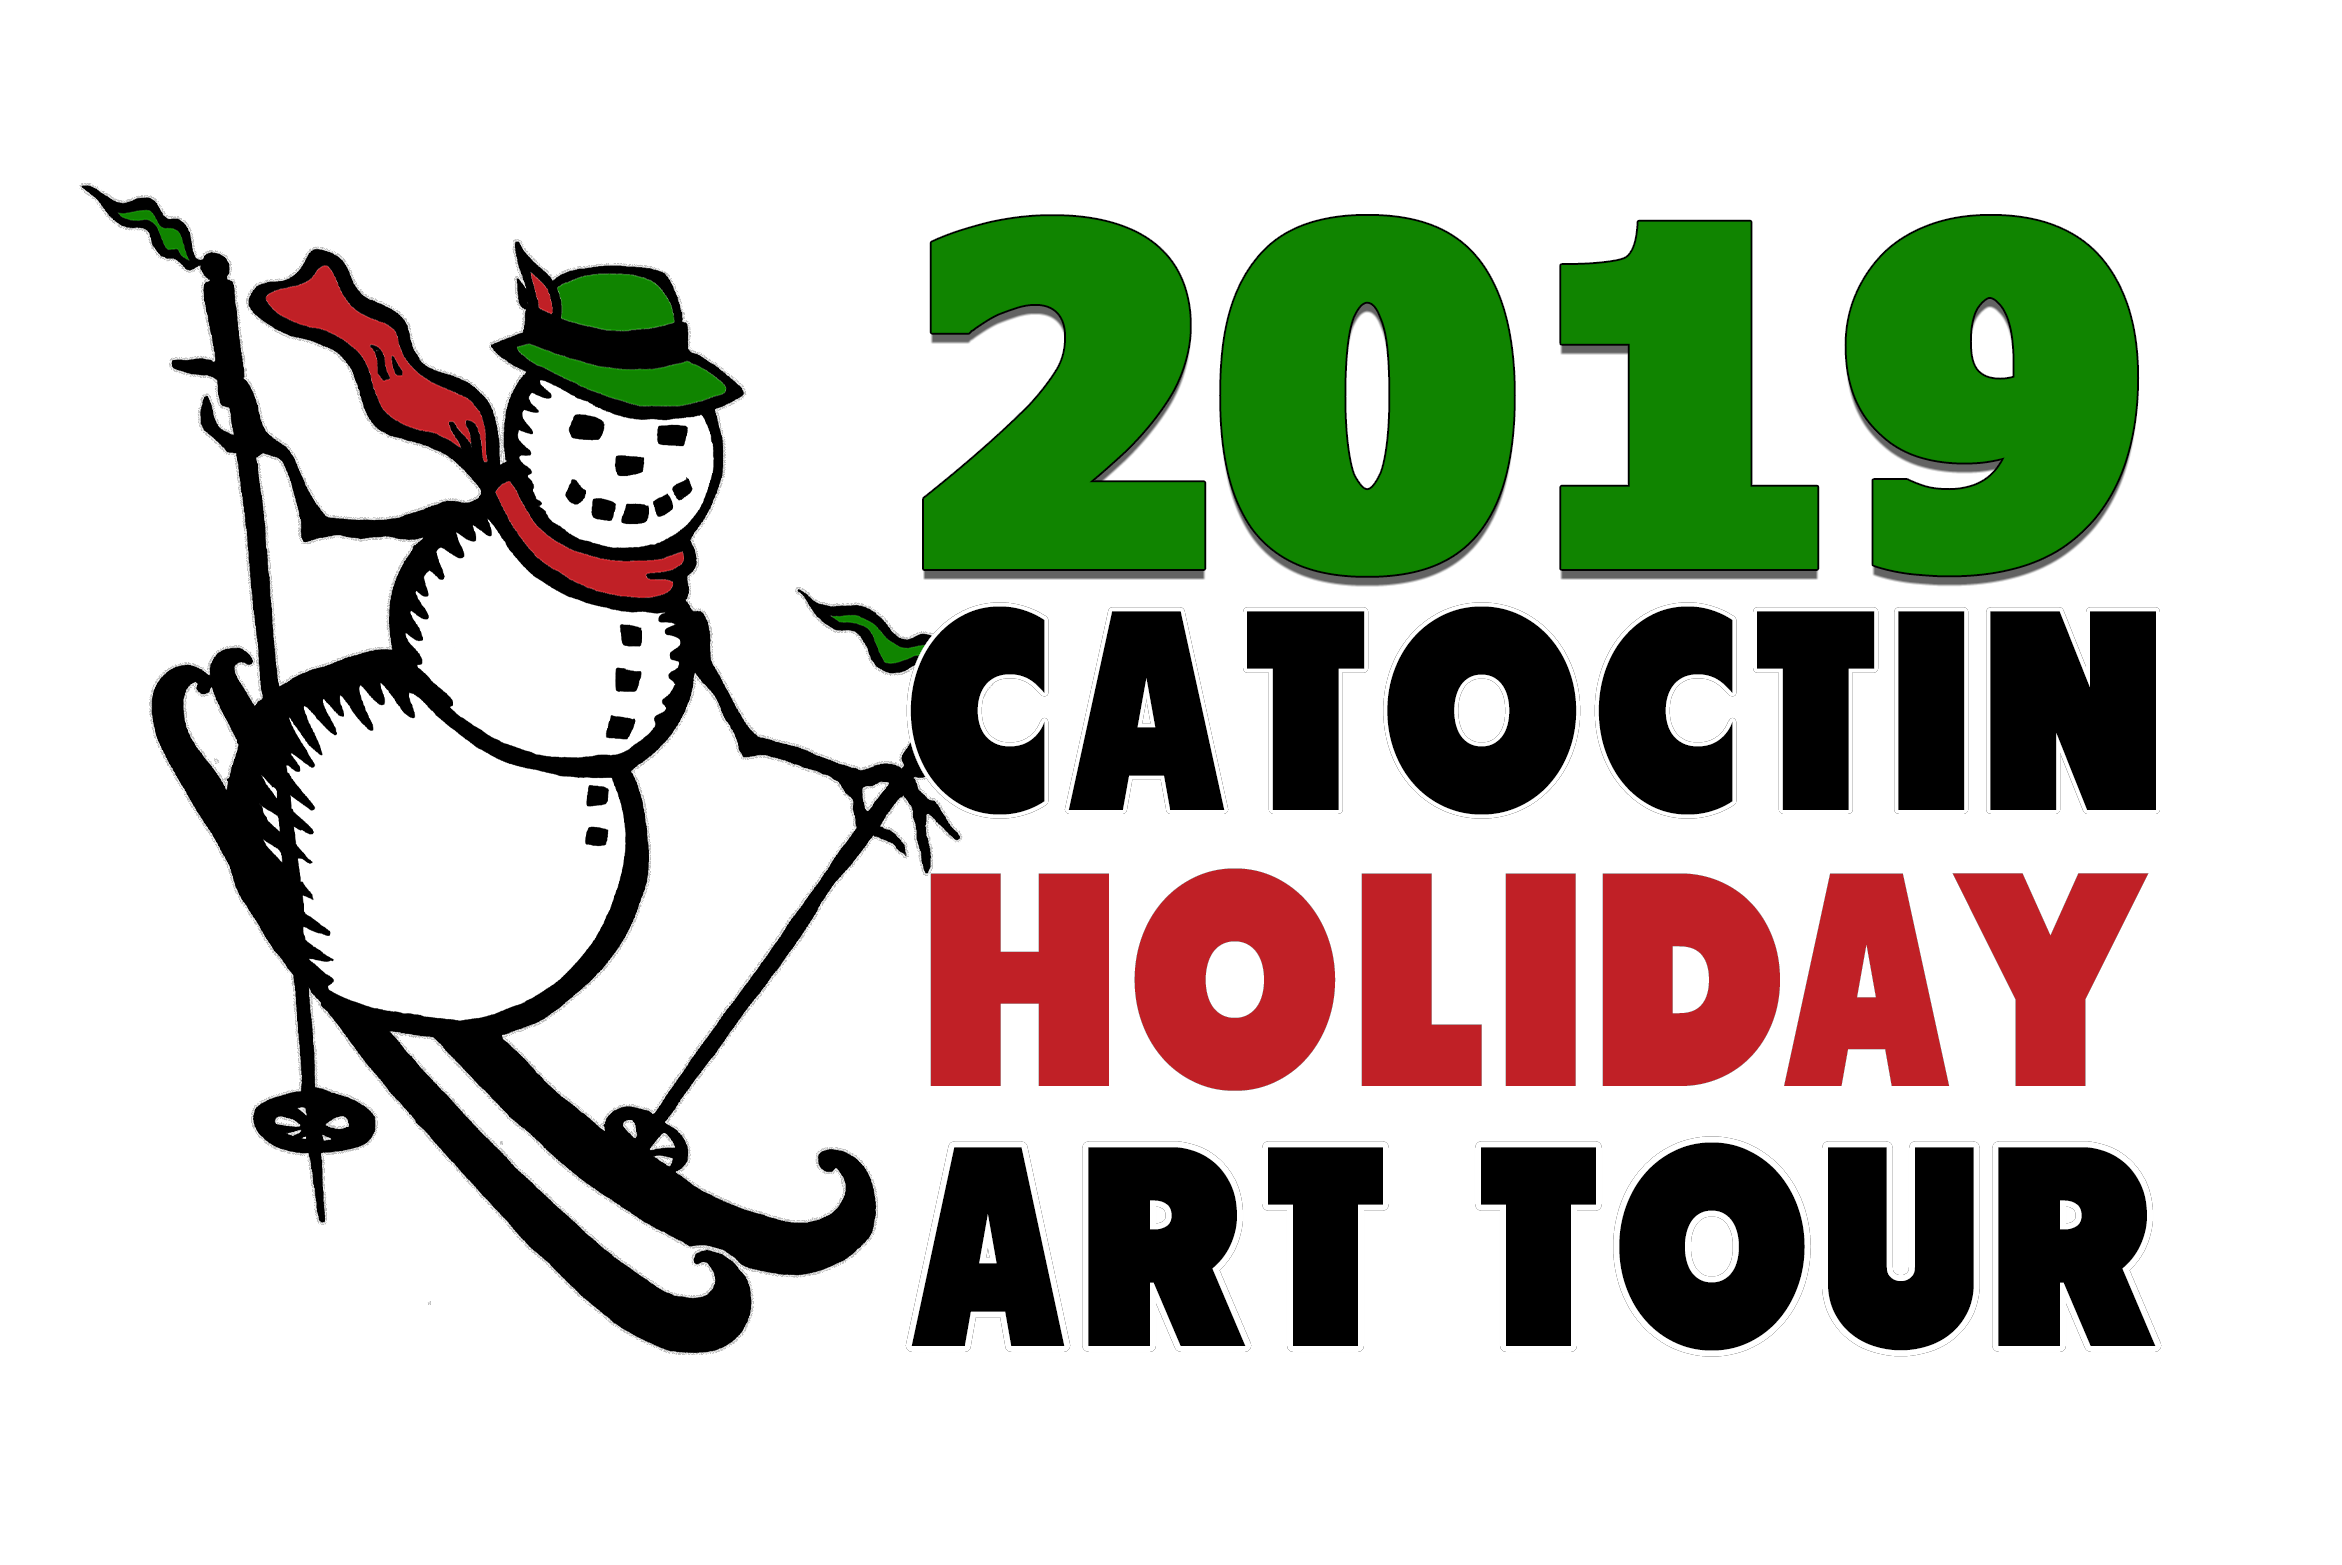 2019 Catoctin Holiday Art Tour